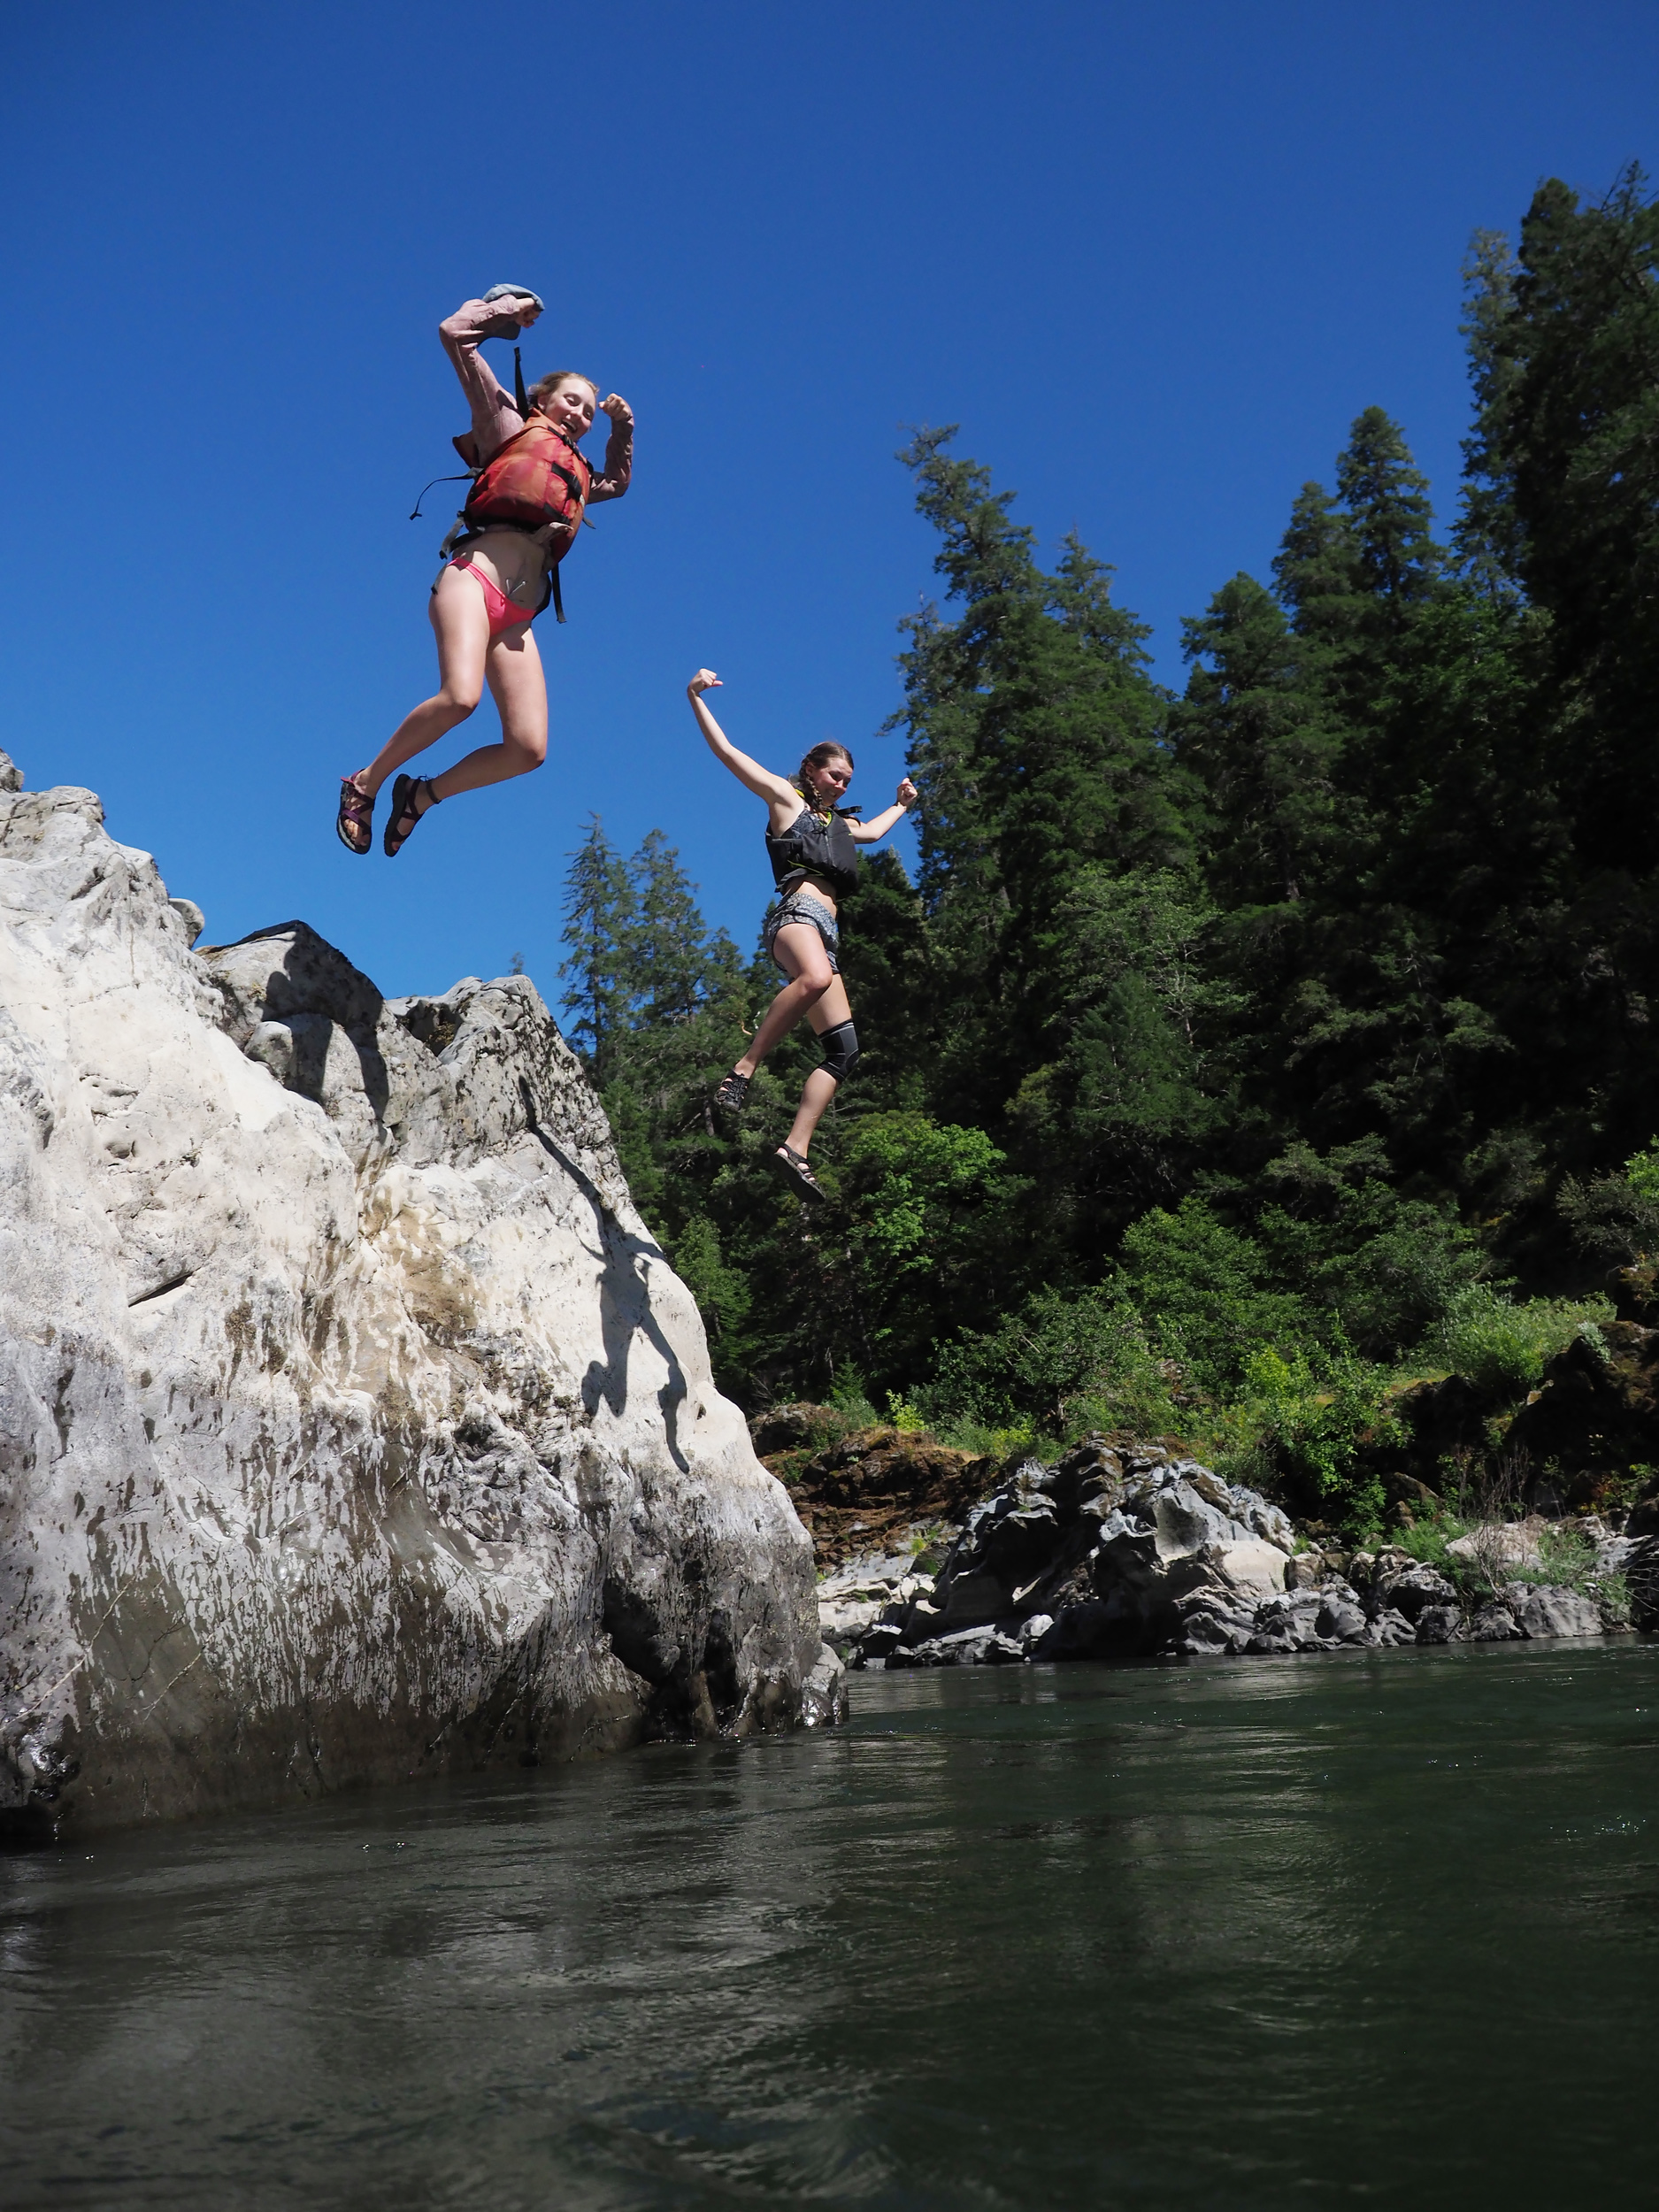 """Engaging in the excitement that comes inherantly with """"Curious play"""" on the Rogue River in Oregon Canyon of the Green River."""